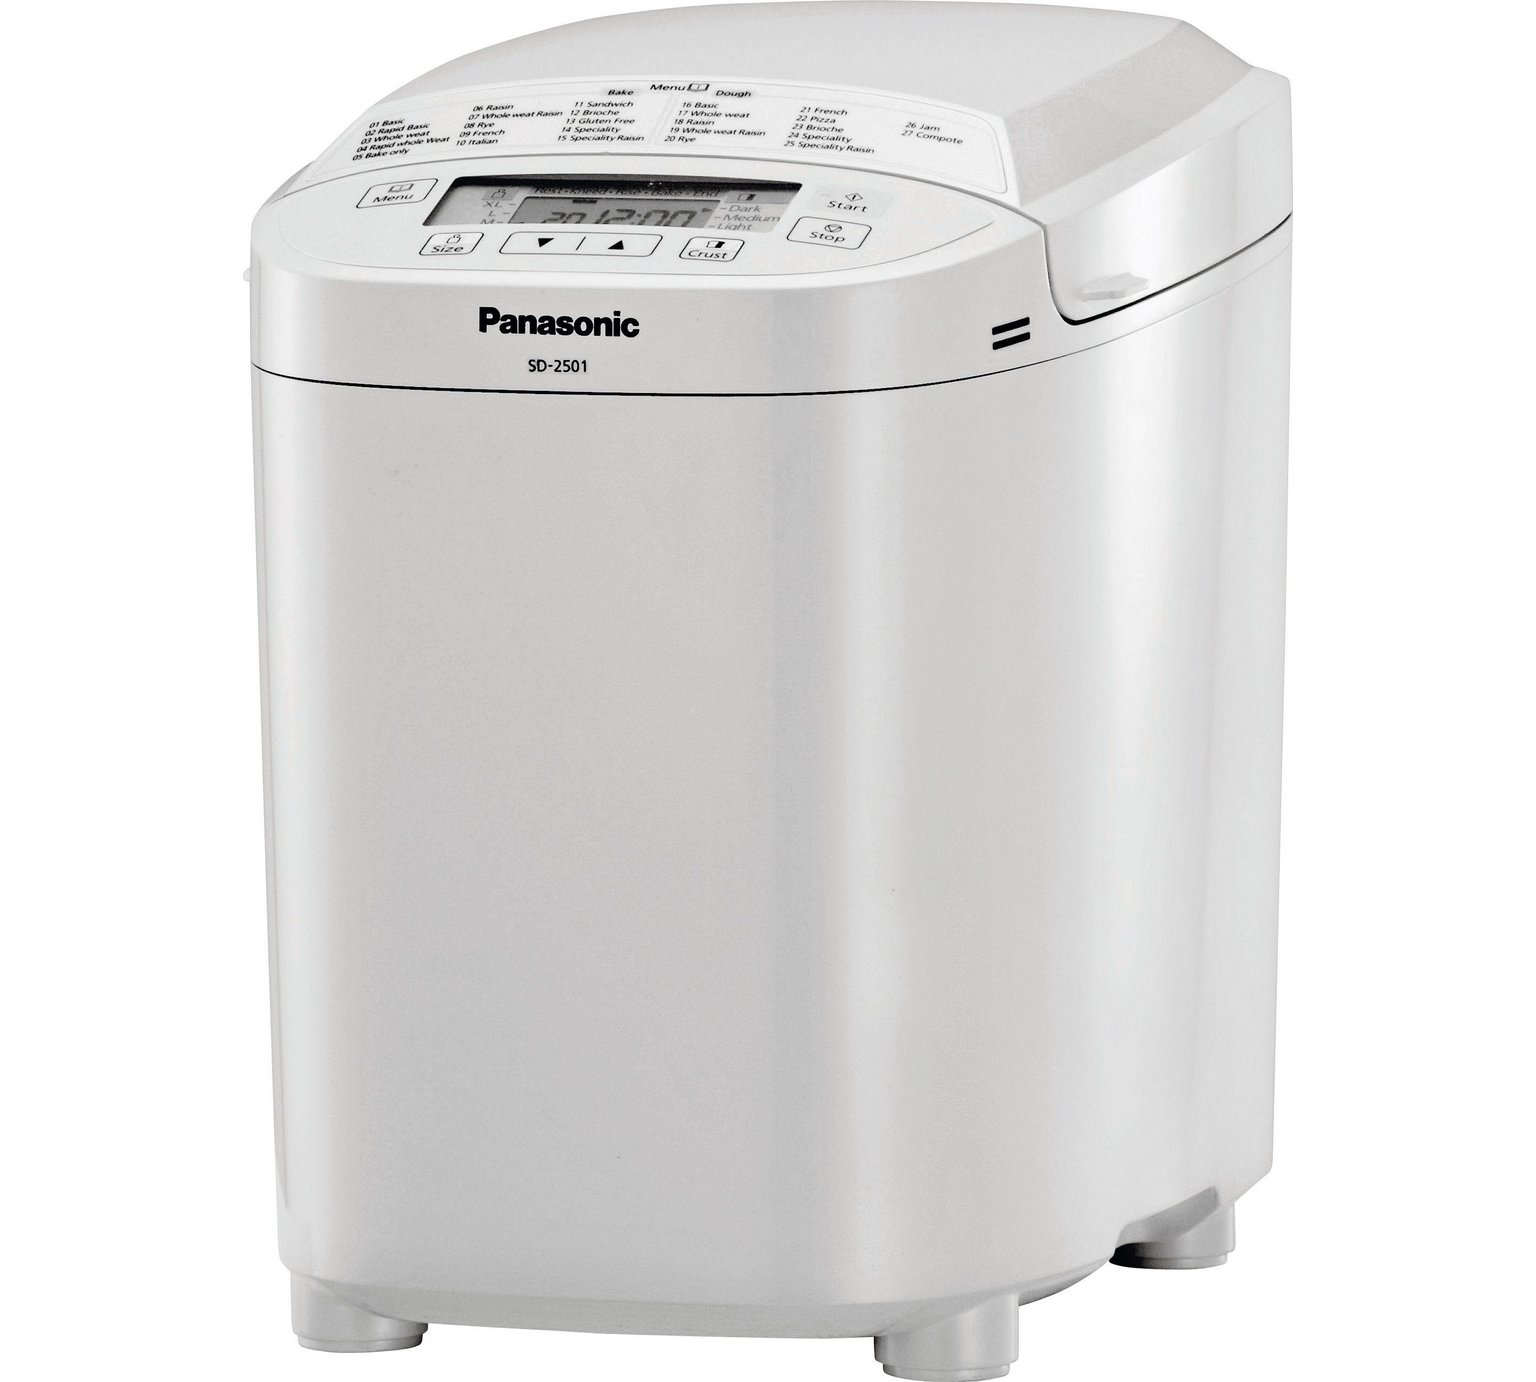 Panasonic SD2500 Breadmaker - White